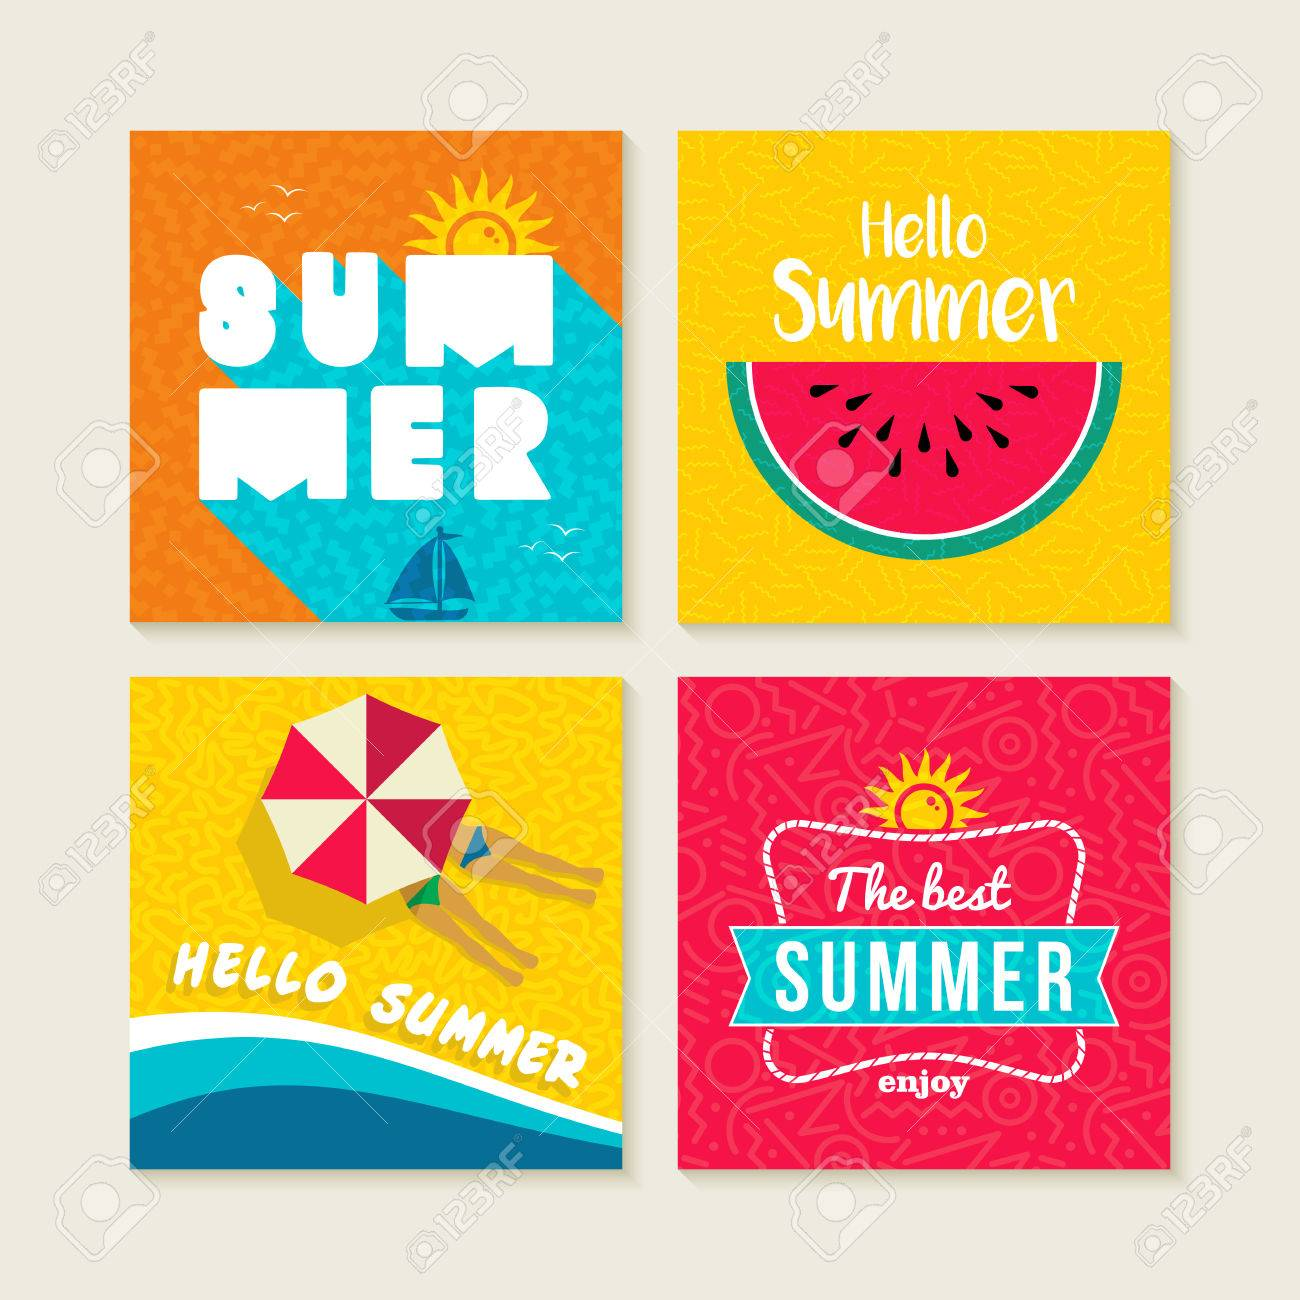 Hello Summer Vacation Set Of Happy Illustrations With Text Quotes Colorful Fruit Design Beach